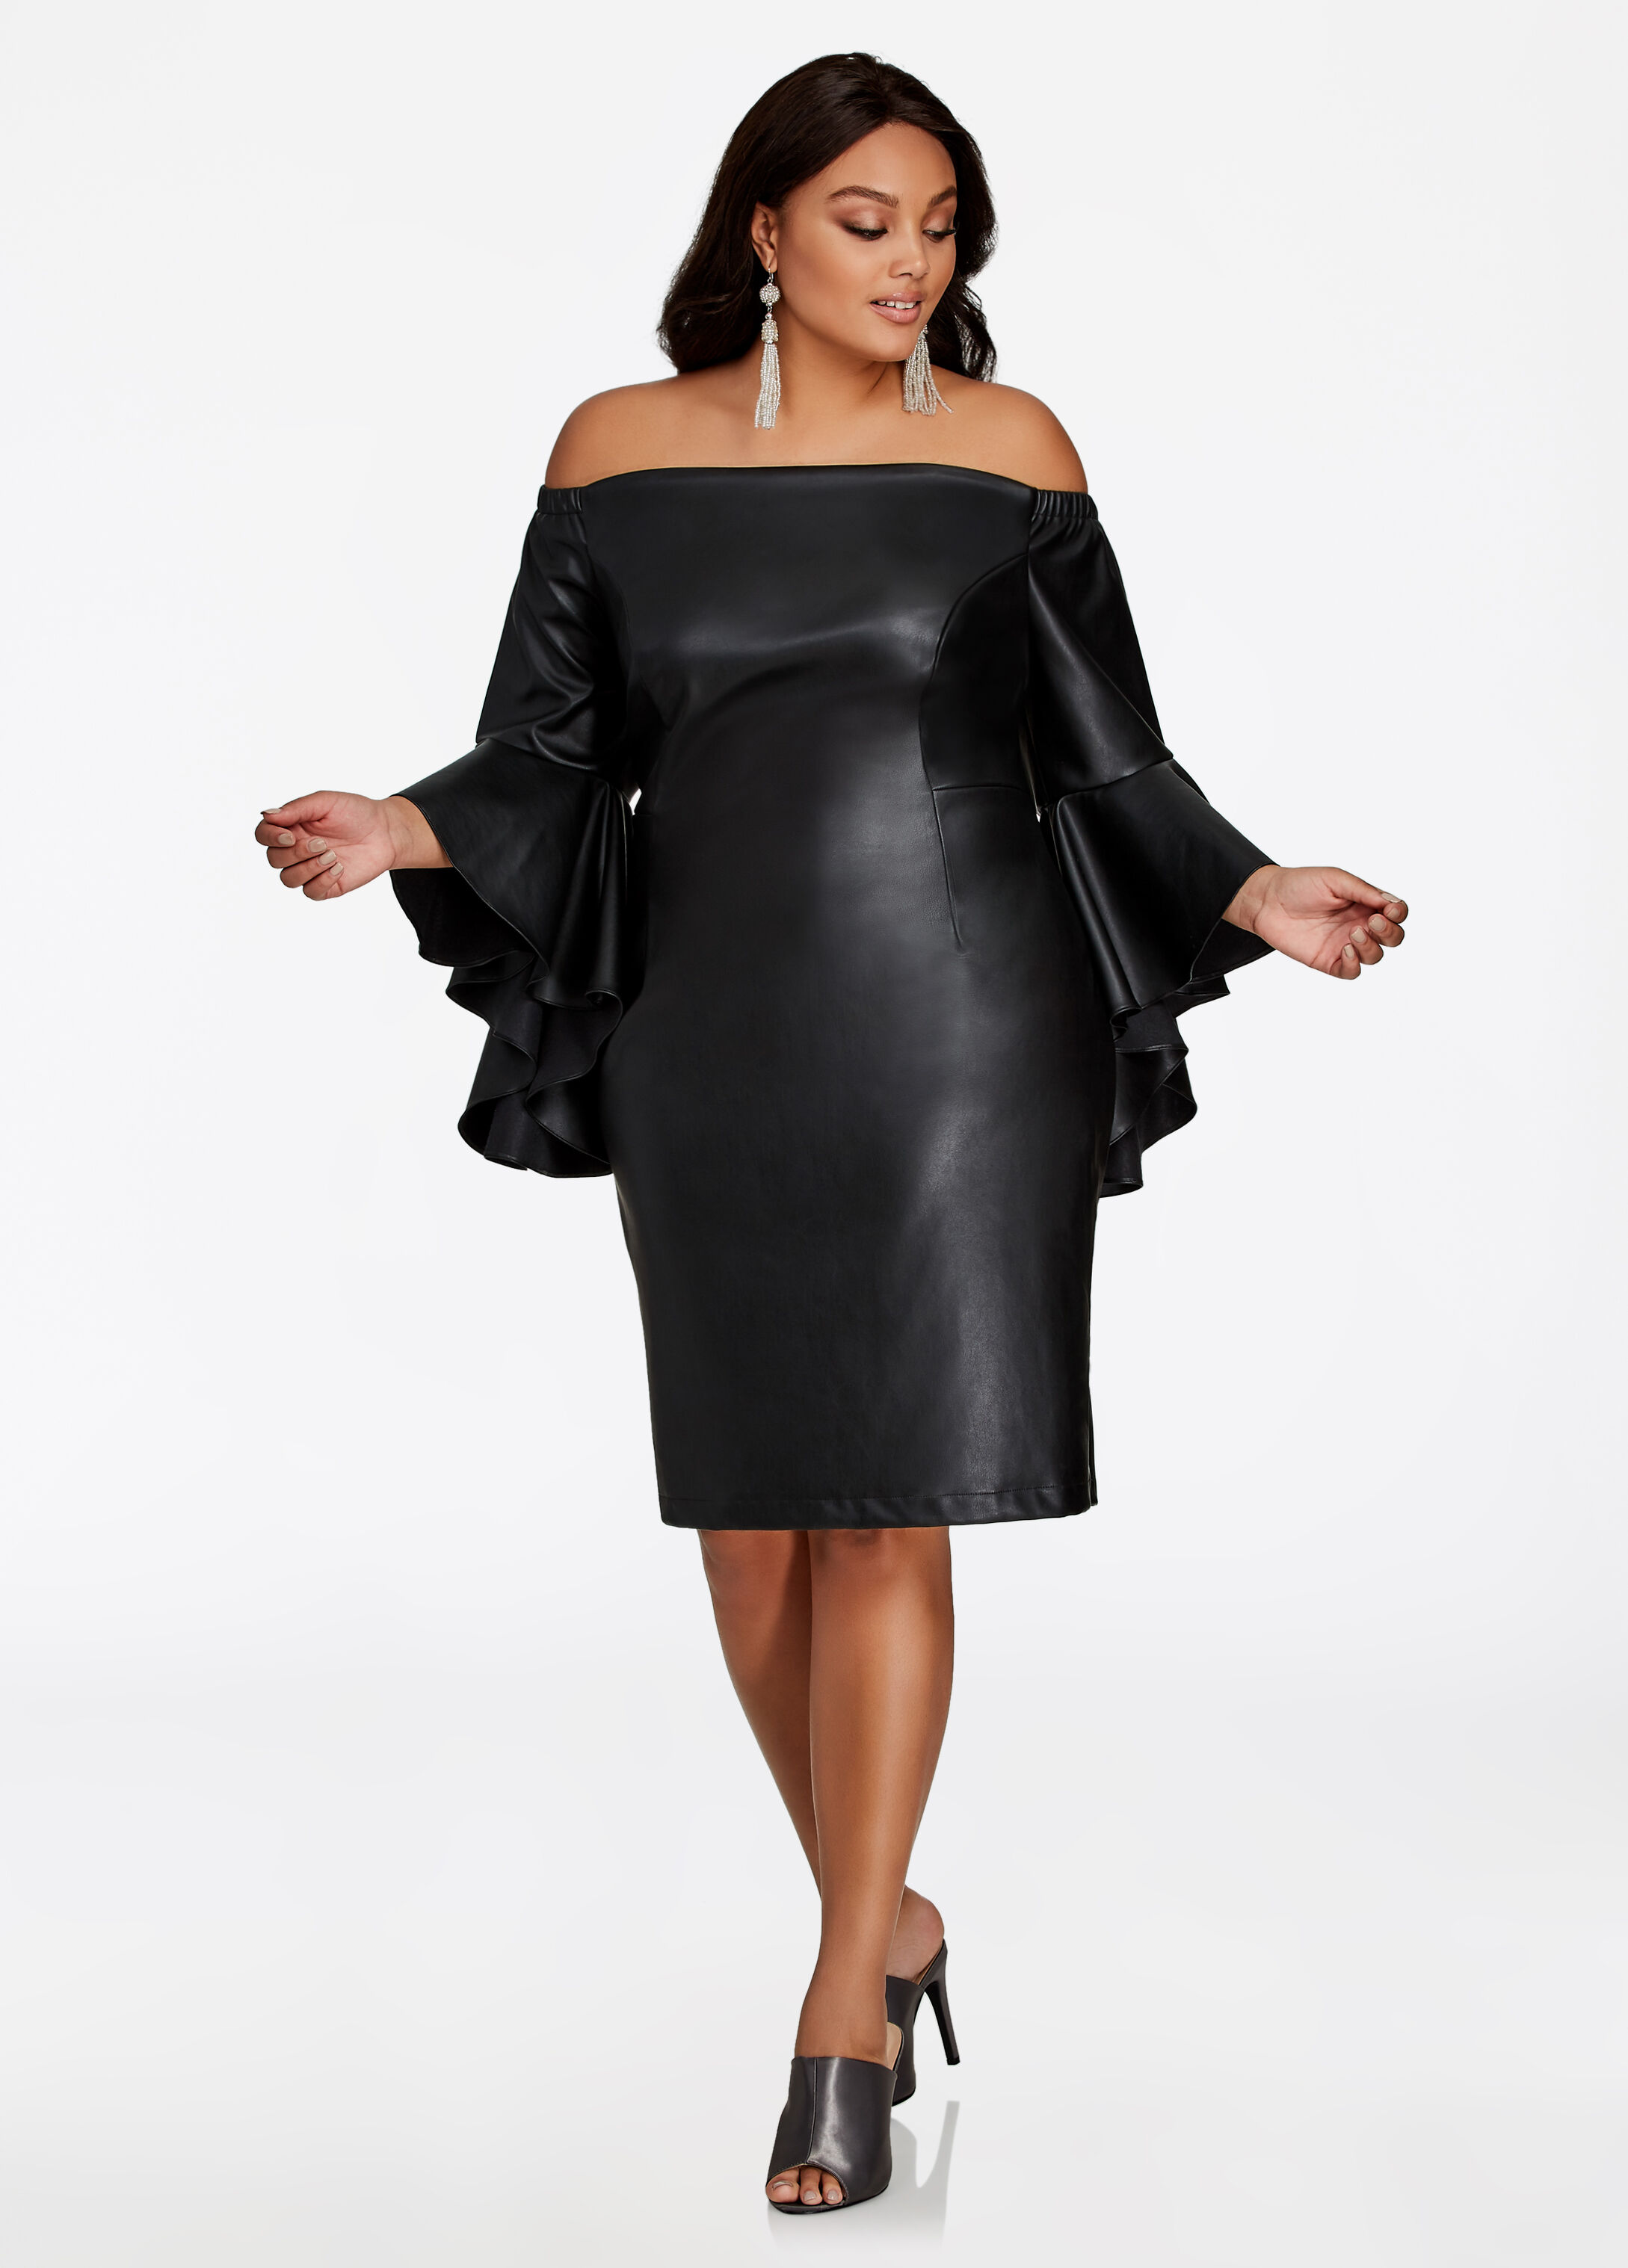 Leather dresses have been a favorite among celebs and style divas since time immemorial, as they add a dash of oomph, femininity, class and elan. In fact, designer leather dresses especially halter necks, tube necklines, laced, sweetheart neckline and many more have been a rage among the fashion conscious girls the world over.